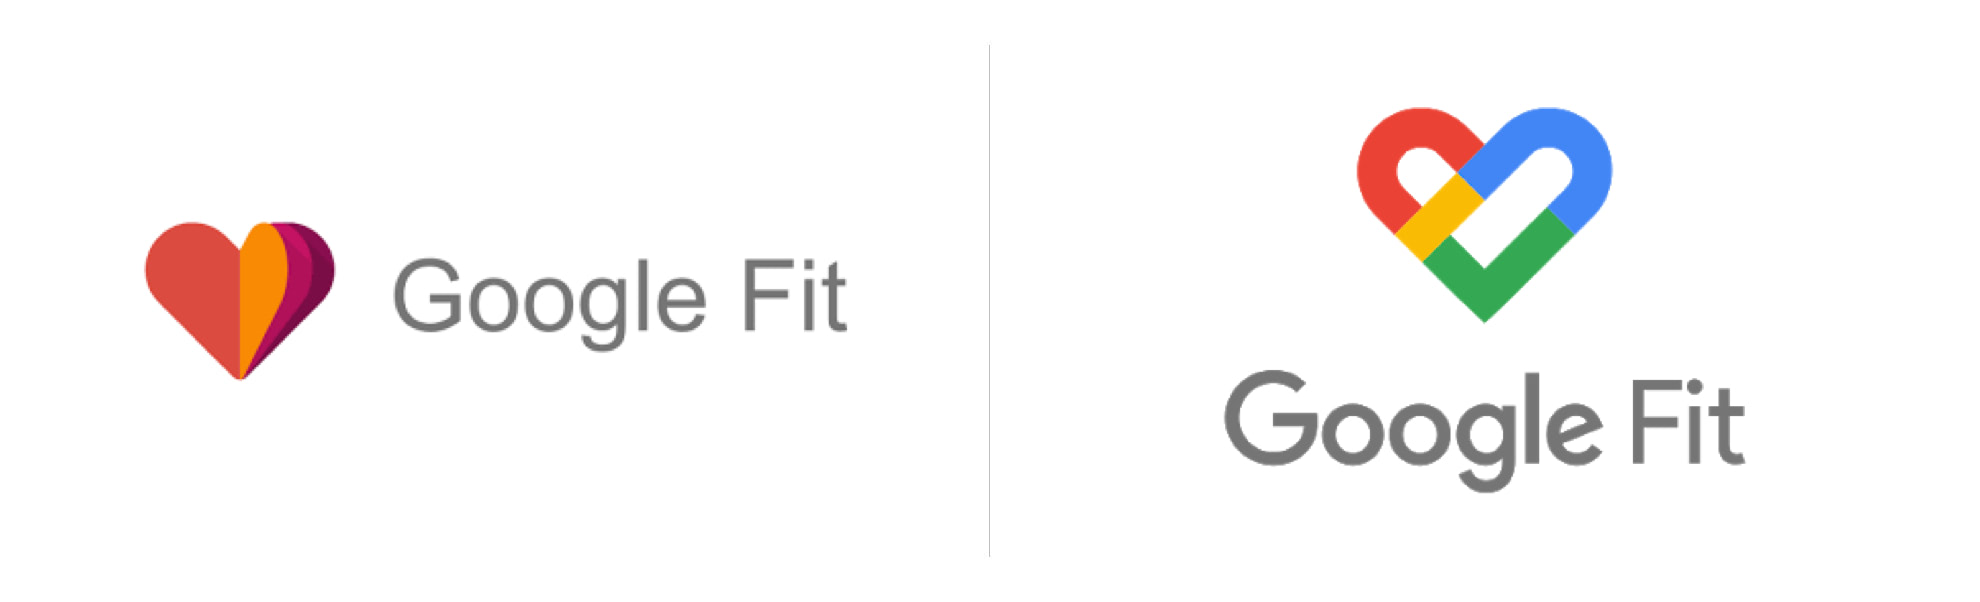 stare i nowe logo google fit